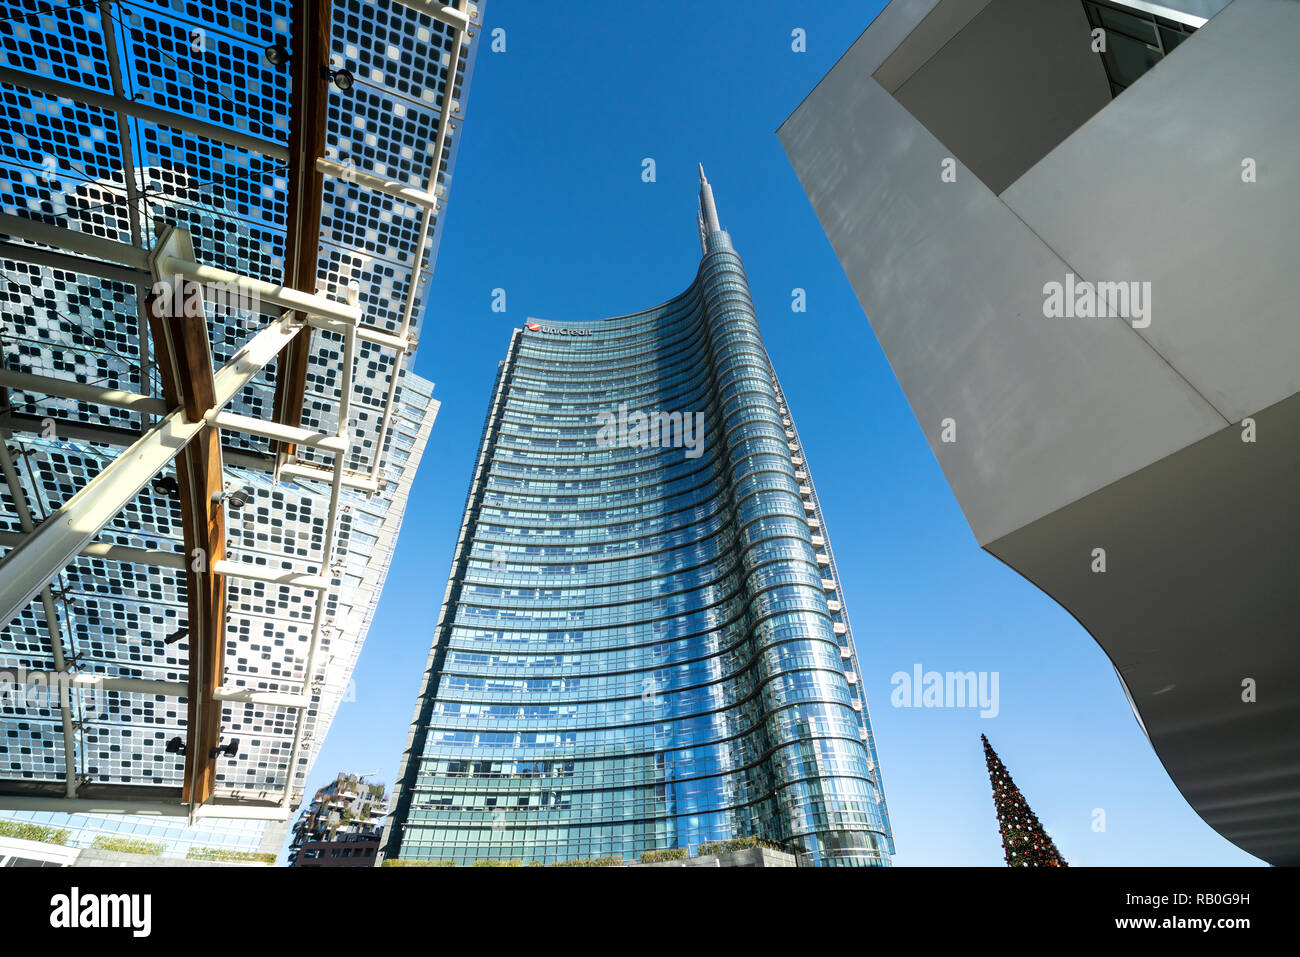 The Unicredit tower designed by architect Cesare Pelli in the Isola district in Milan, Italy Stock Photo